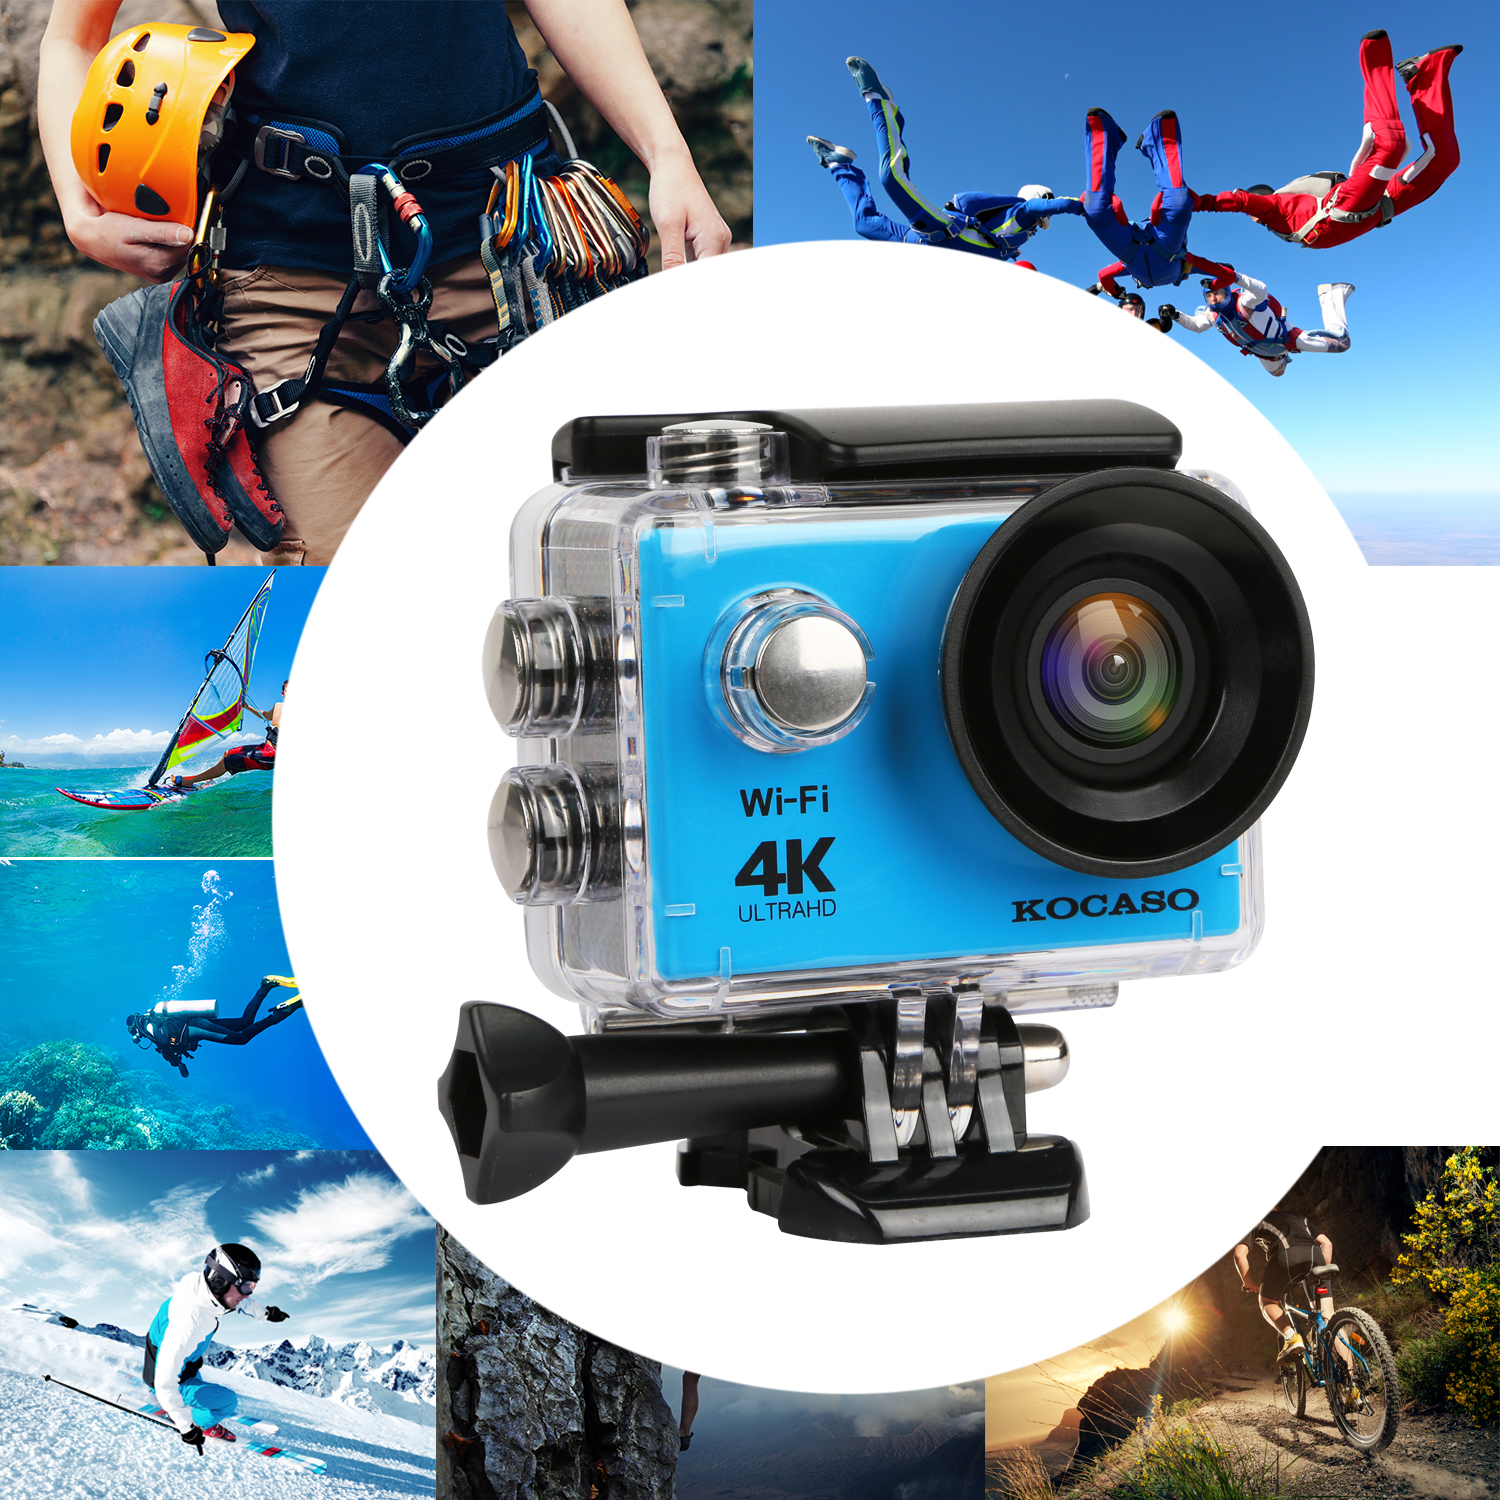 "KOCASO [4K Ultra HD] Sports 170° Ultra Wide-Angle Lens Action Camera. 2"" LCD Display, Supports Slow Motion/Time Lapse/Loop/Driving Record. Built-In Wi-Fi/HDMI, FREE Waterproof Underwater Case - BLACK"